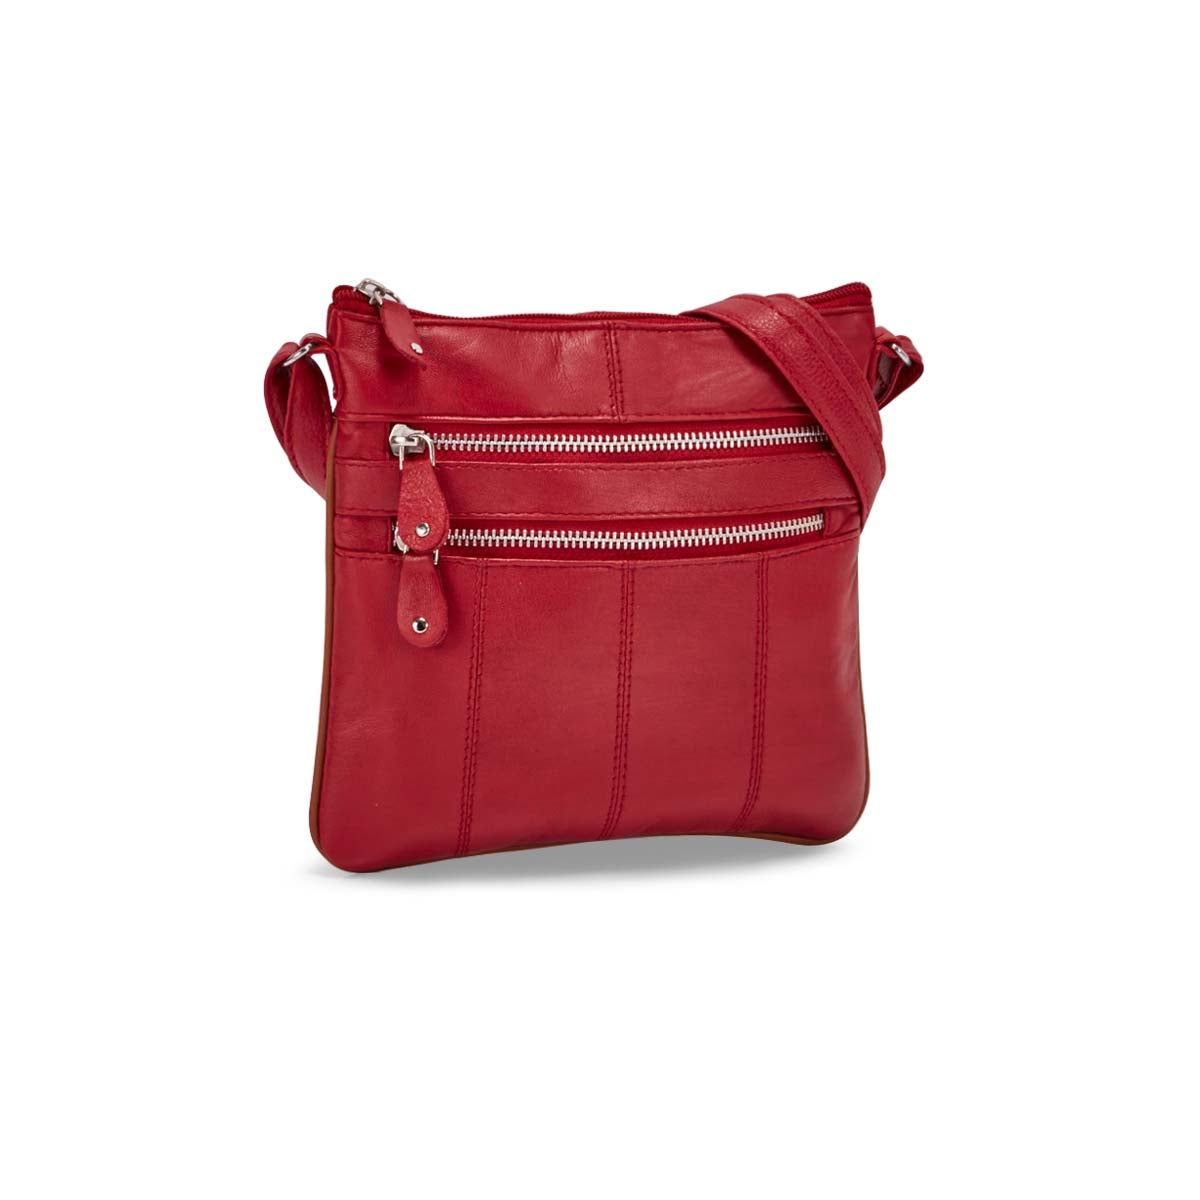 Women's 1031 red sheep leather cross body bag